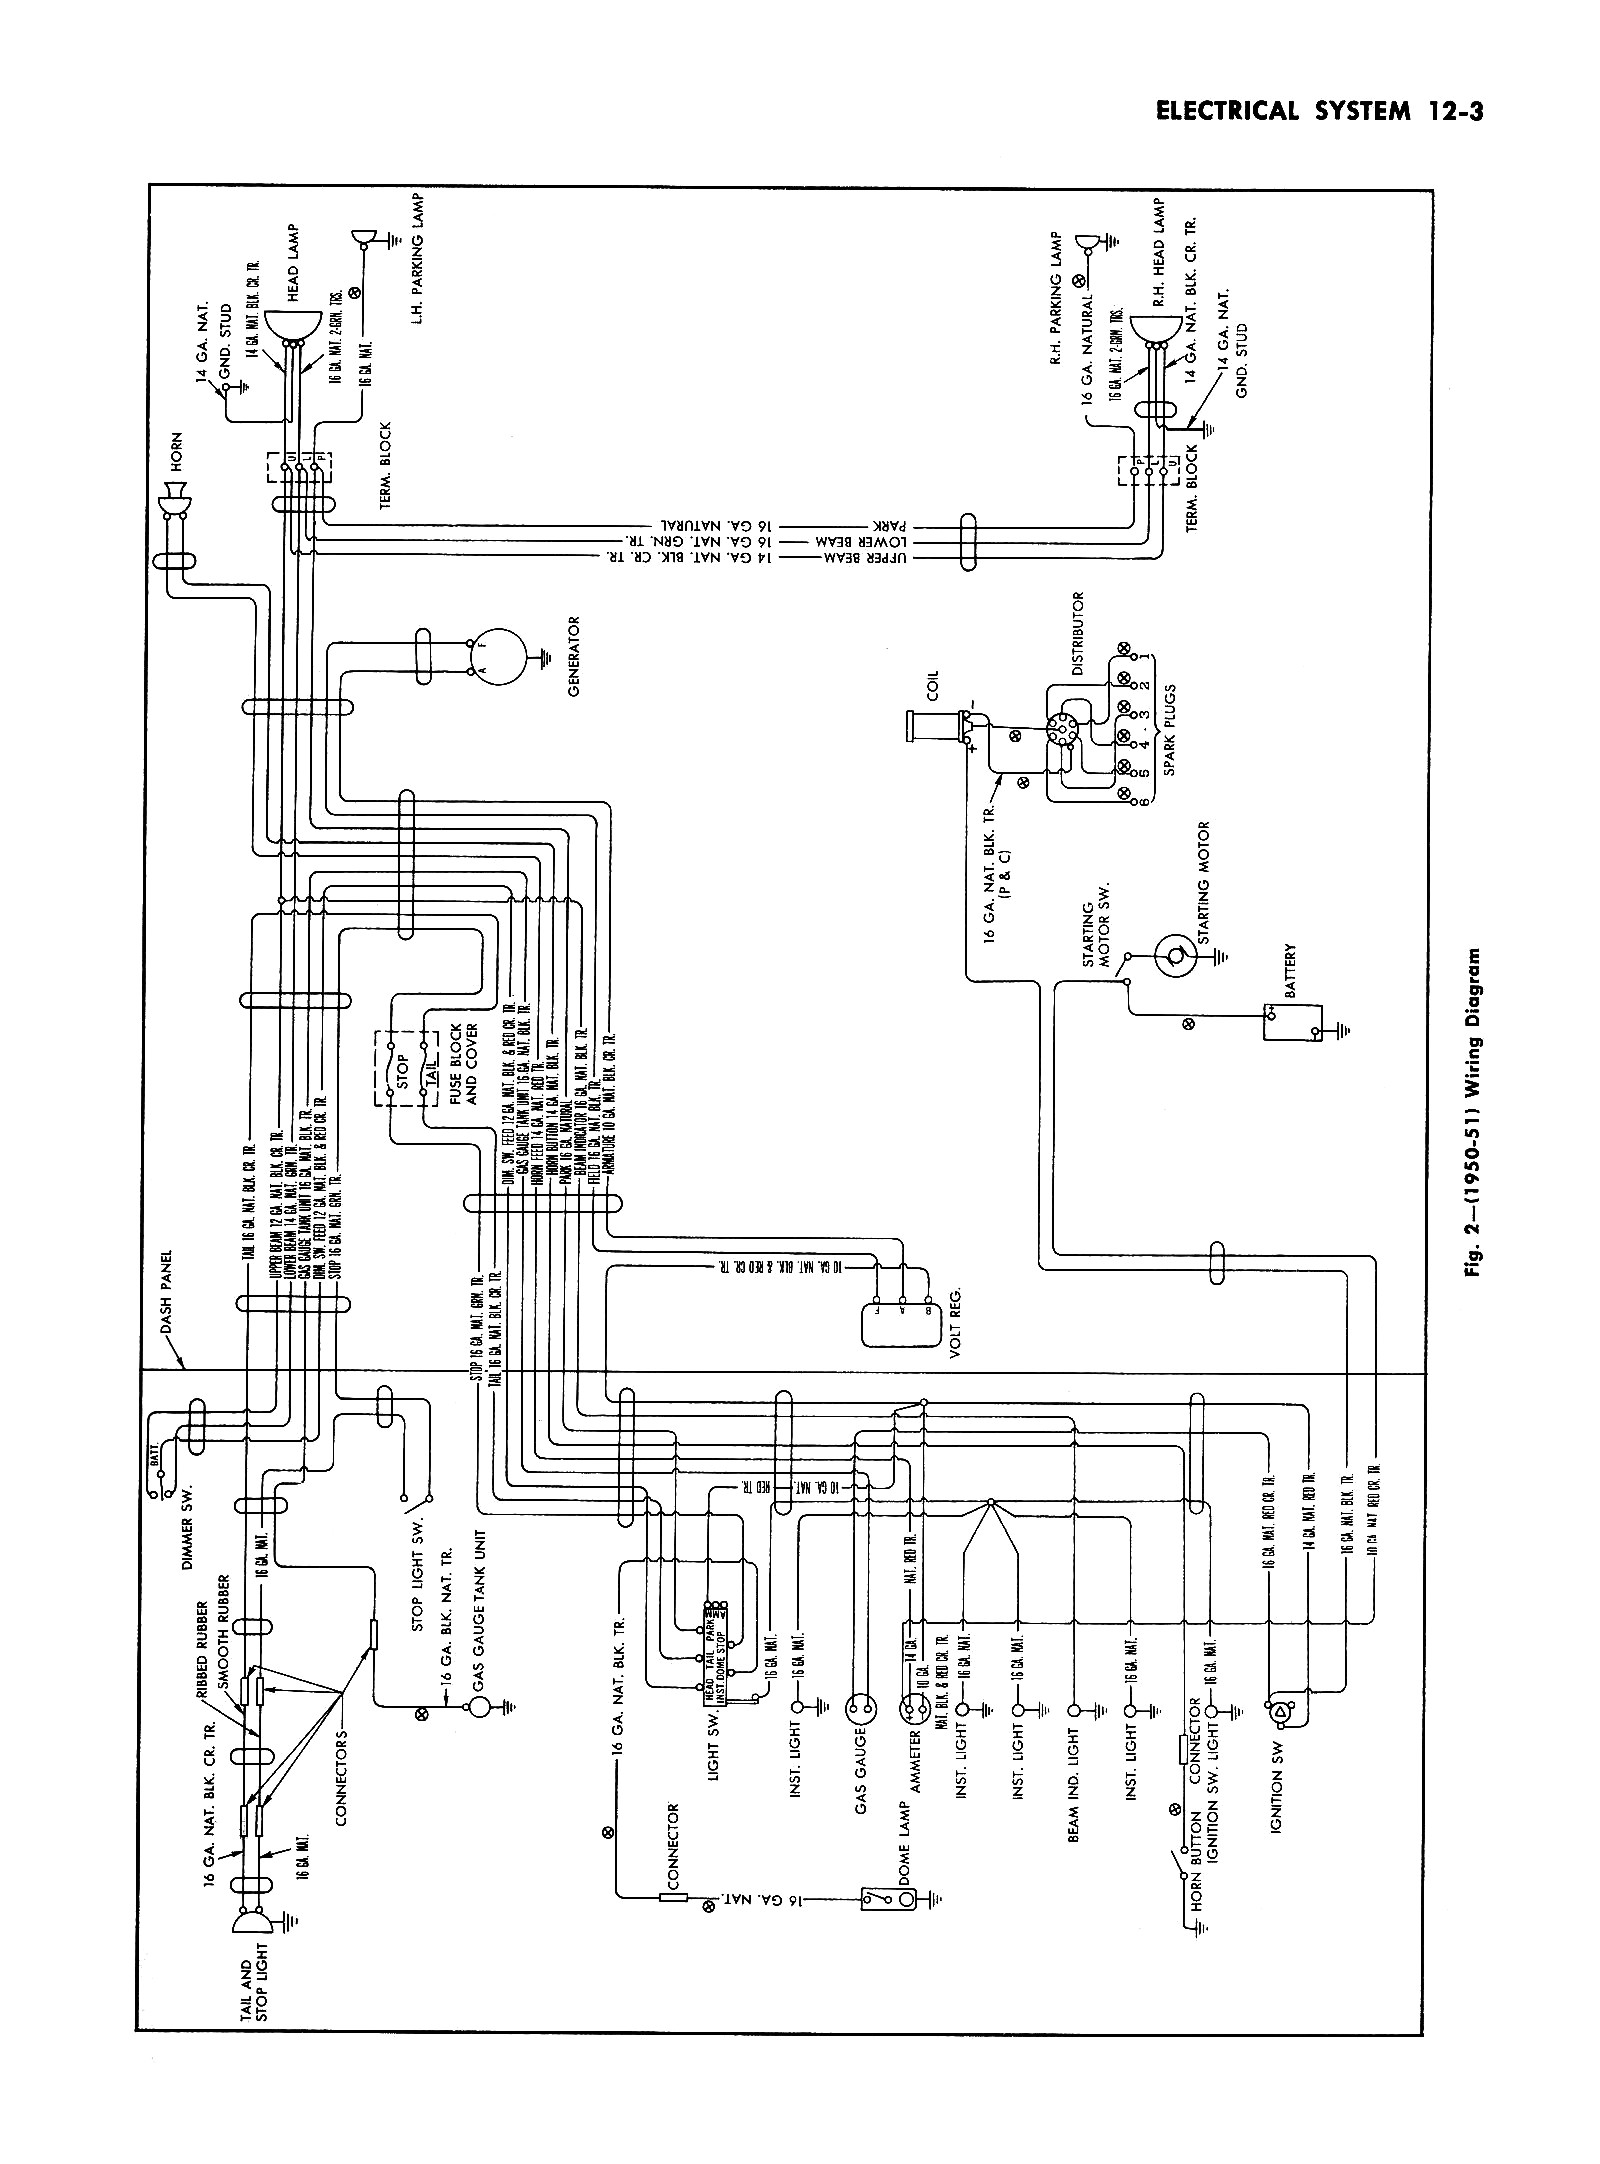 50car1 chevy wiring diagrams 1929 Pontiac Sedan Model at gsmportal.co